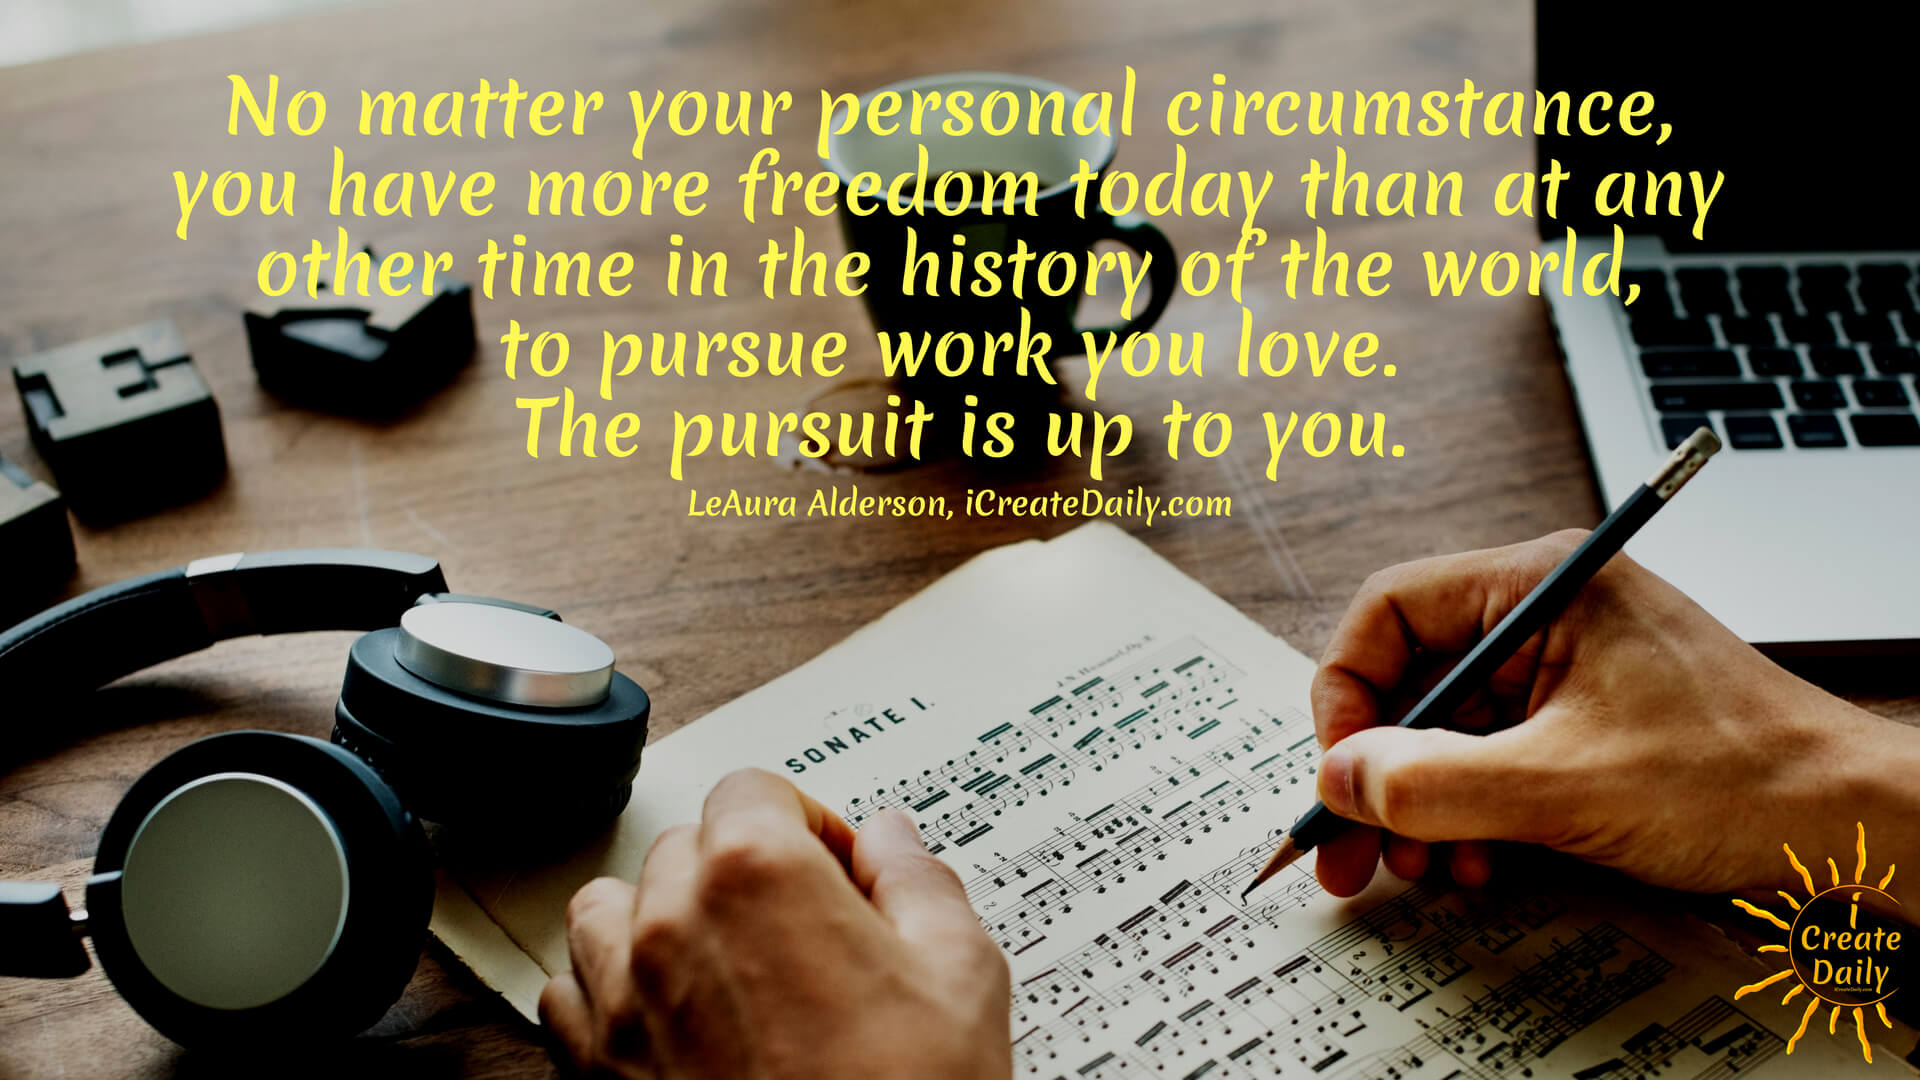 No matter your personal circumstance, you have more freedom today than at any other time in the history of the world, to pursue work you love. The pursuit is up to you. ~LeAura Alderson  #success #quotes #goals #life